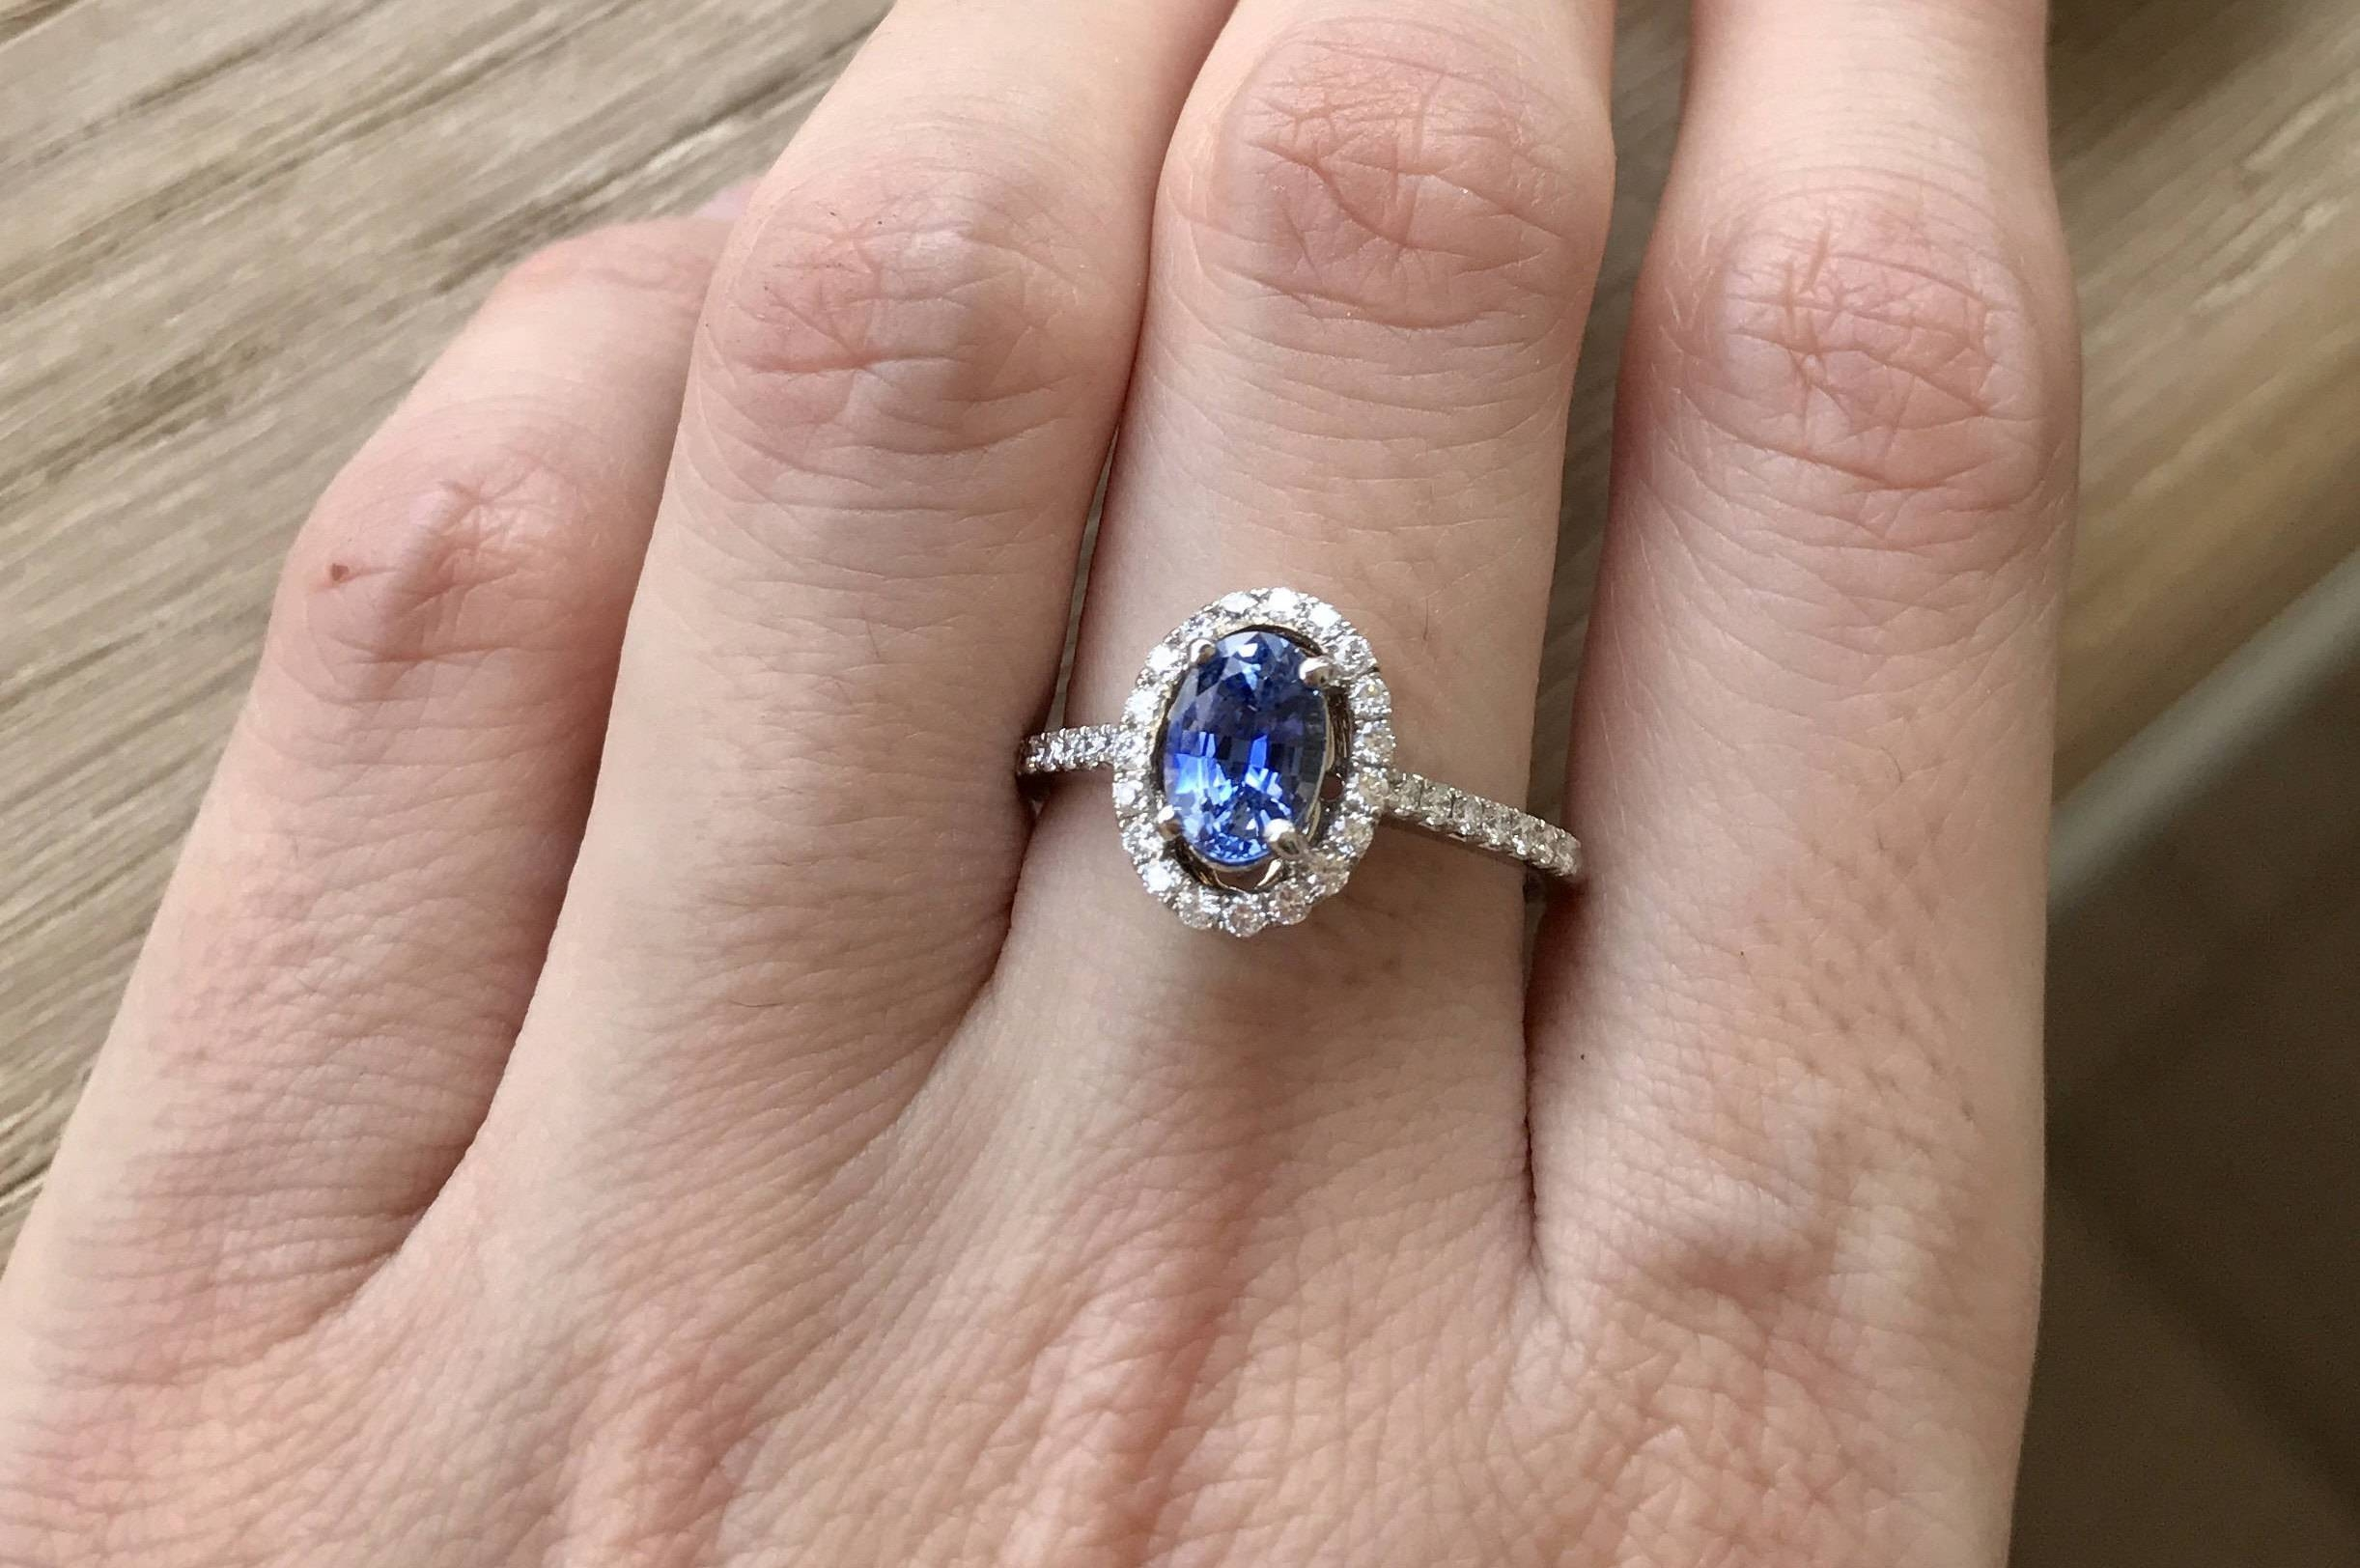 Blue Sapphire Engagement Ring  Sapphire Anniversary Ring  Halo Inside 2017 Halo Anniversary Rings (View 7 of 25)